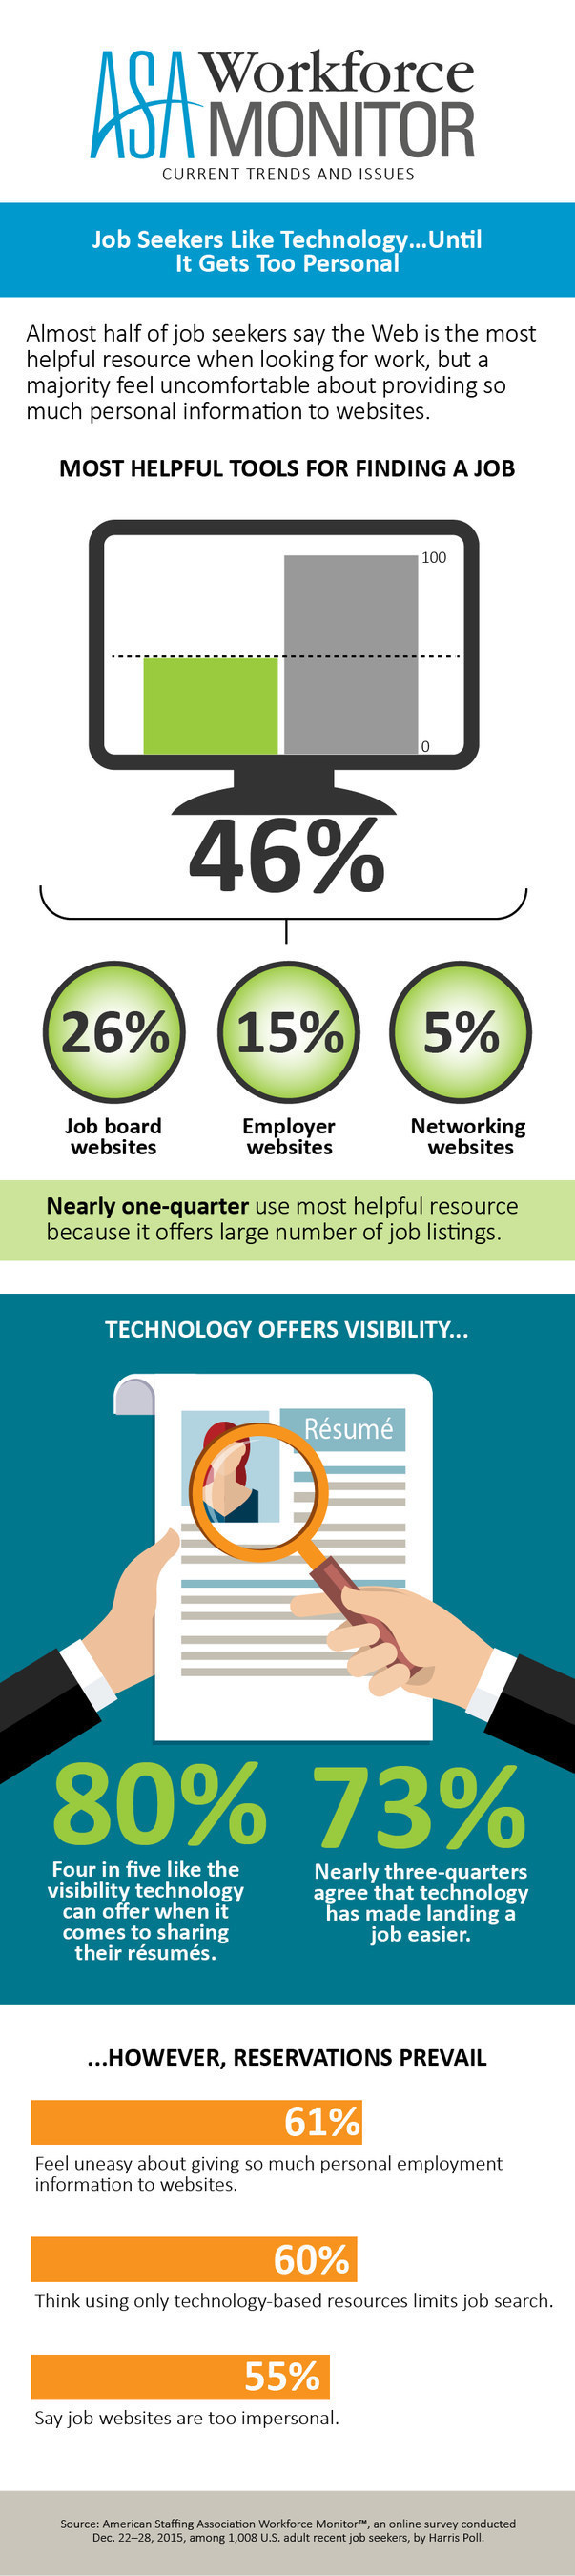 77% of candidates prefer human interaction when searching for jobs american staffing association infographic asa job seekers like tech infographic